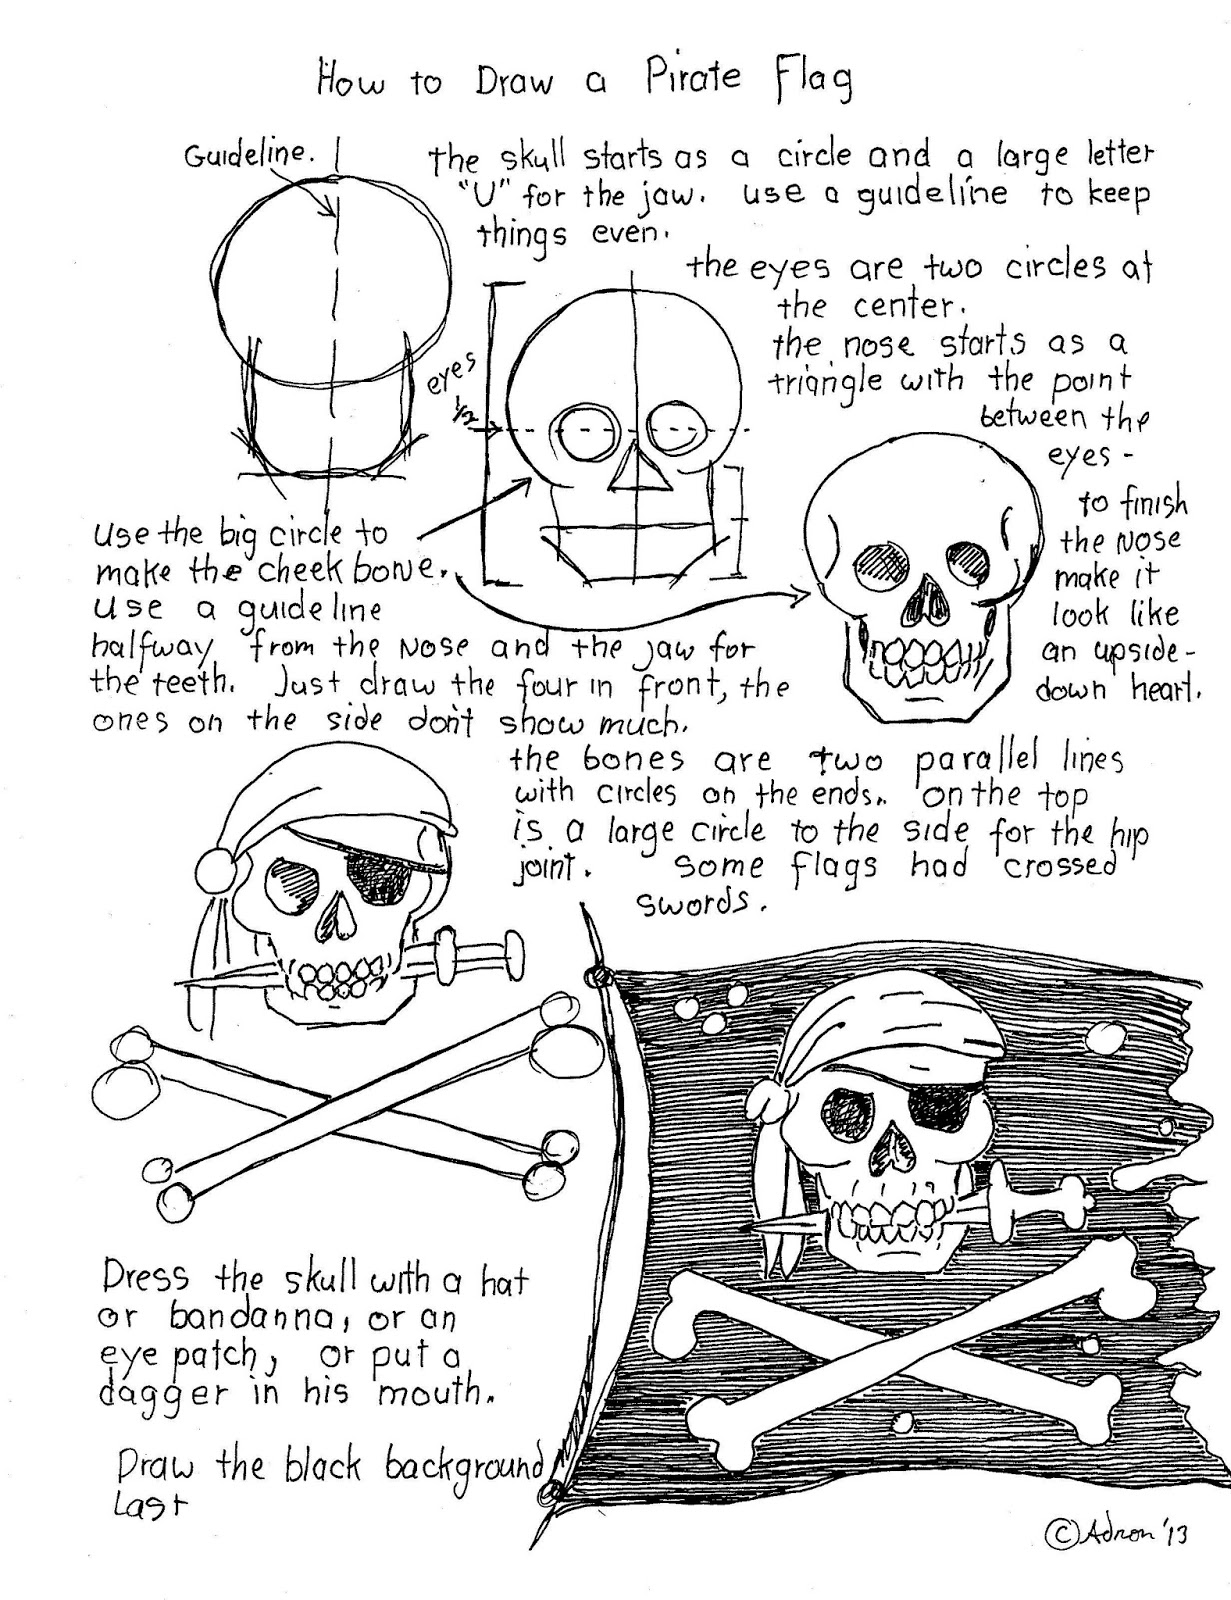 How to draw worksheets for the young artist how to draw a pirate how to draw a pirate flag worksheet robcynllc Choice Image